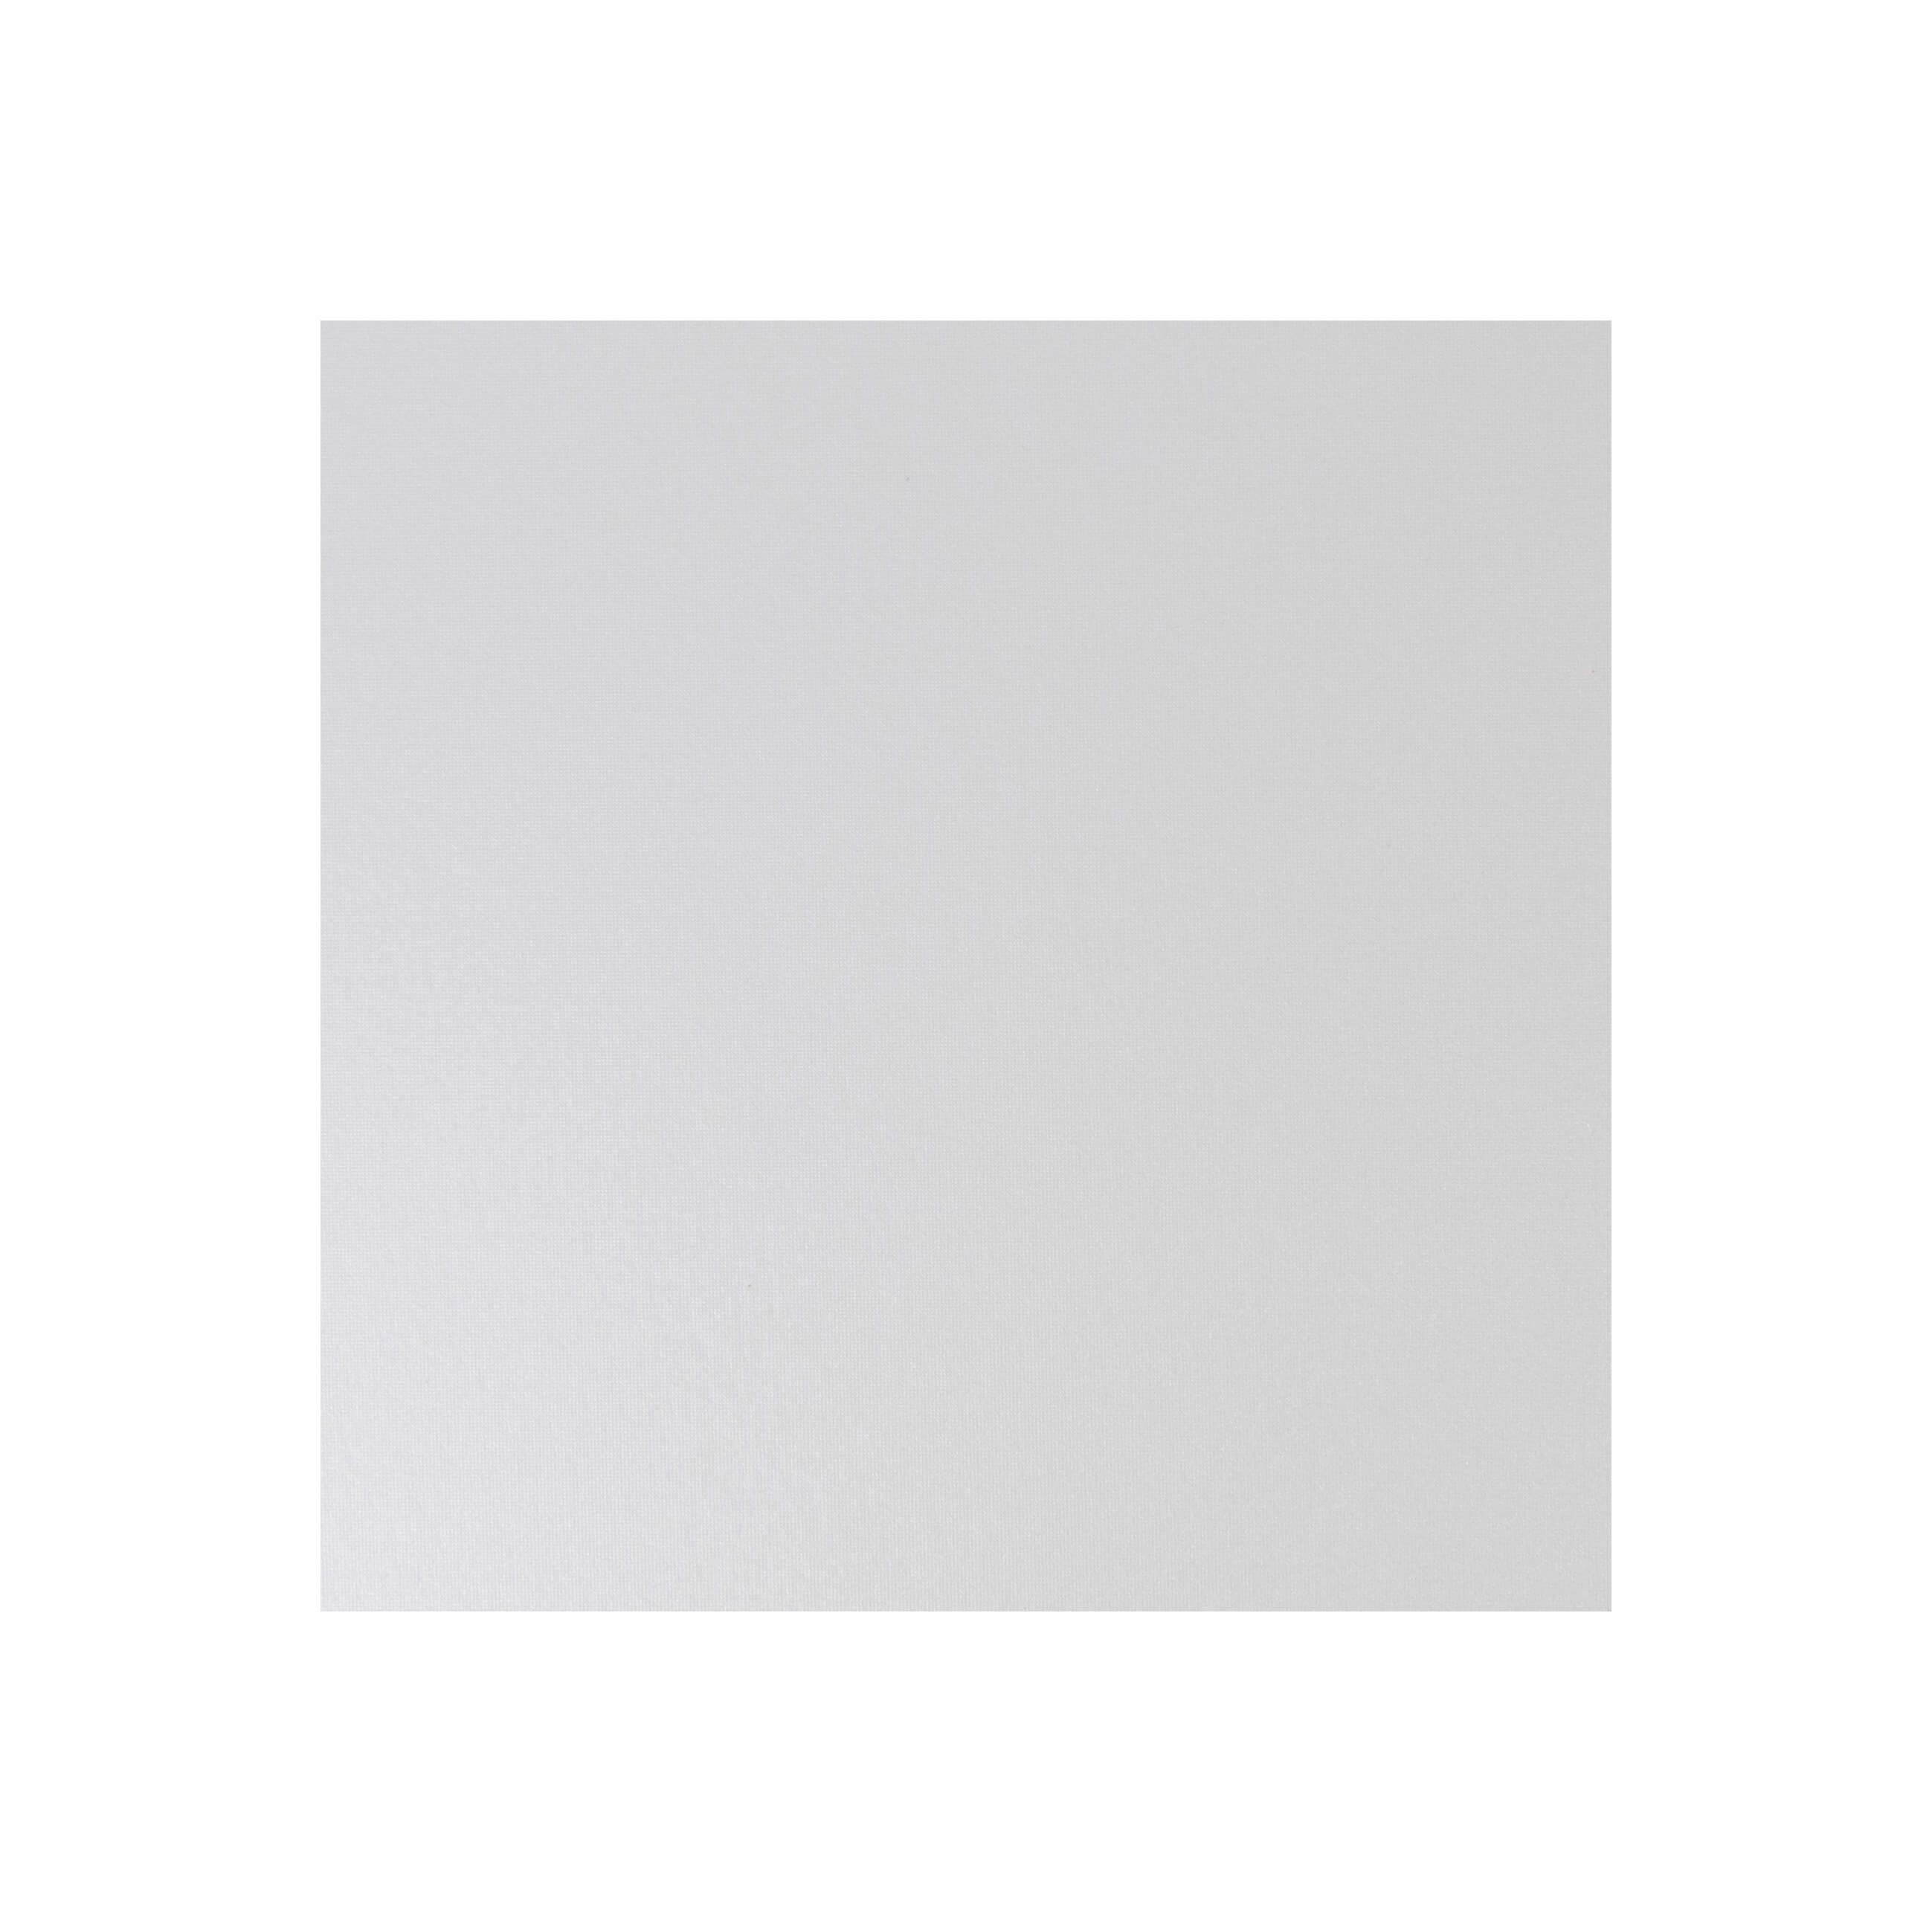 Cardstock 147mm Square - Pearlescent Ivory